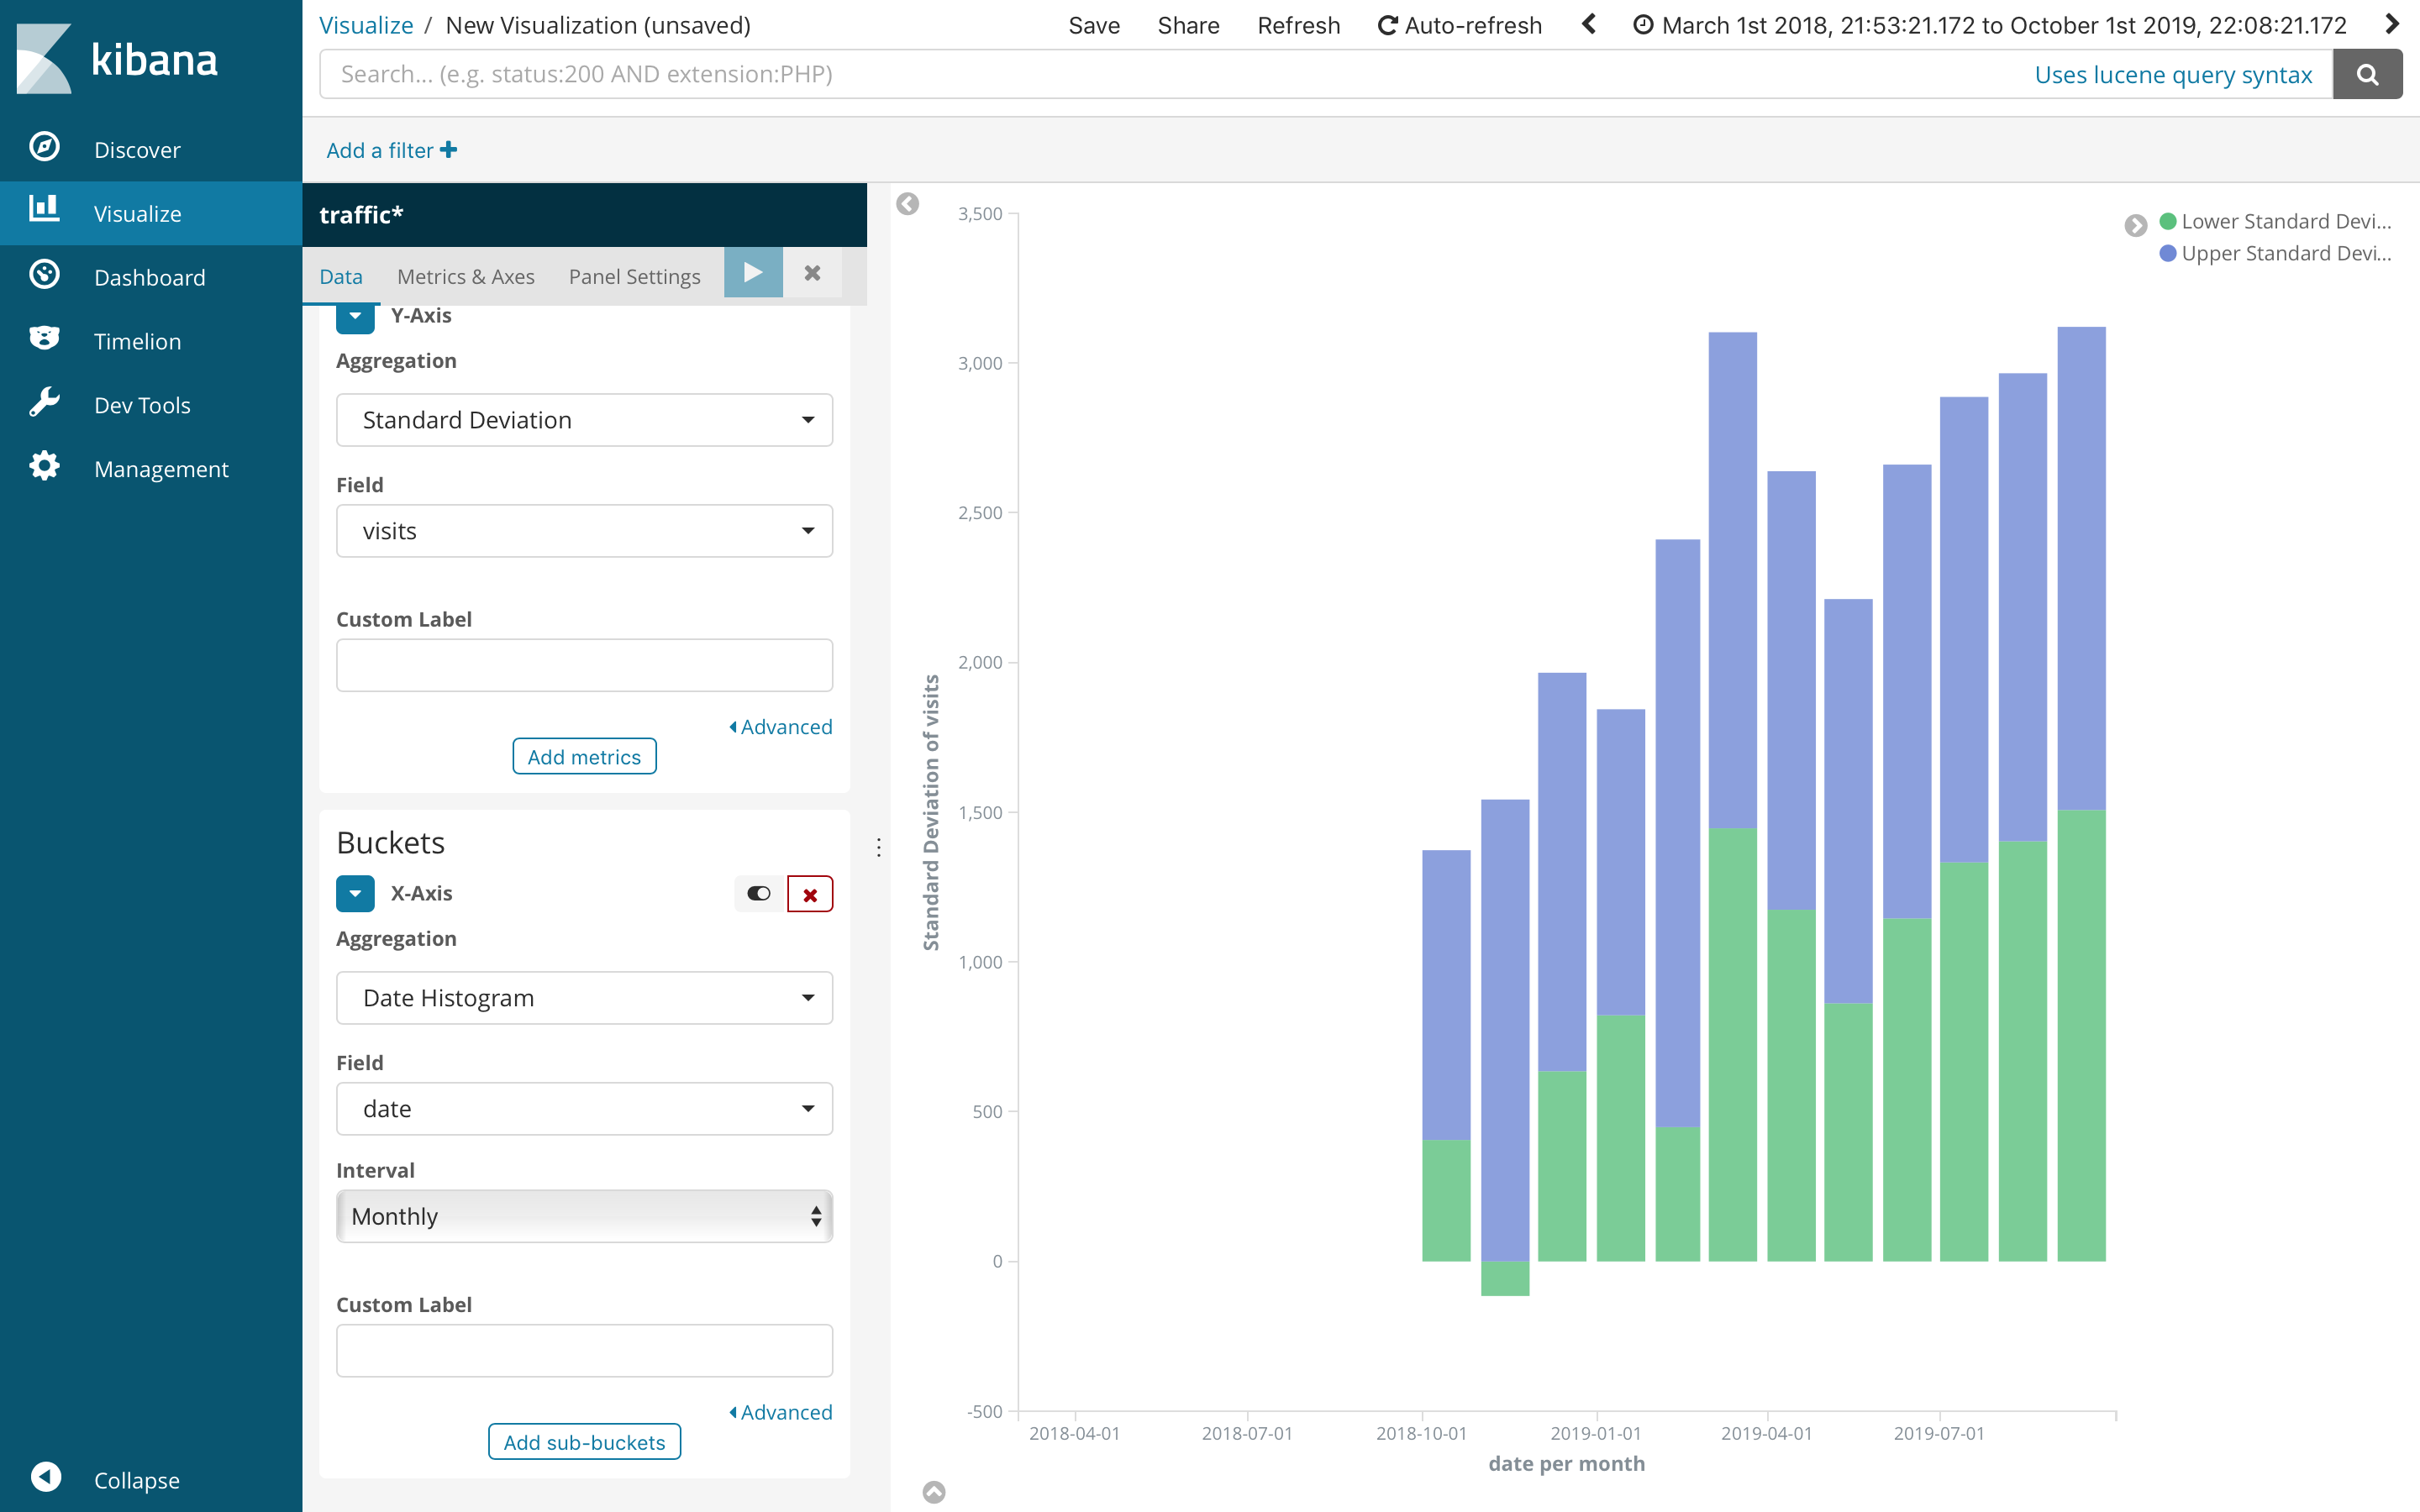 Kibana: Standard Deviation Bounds